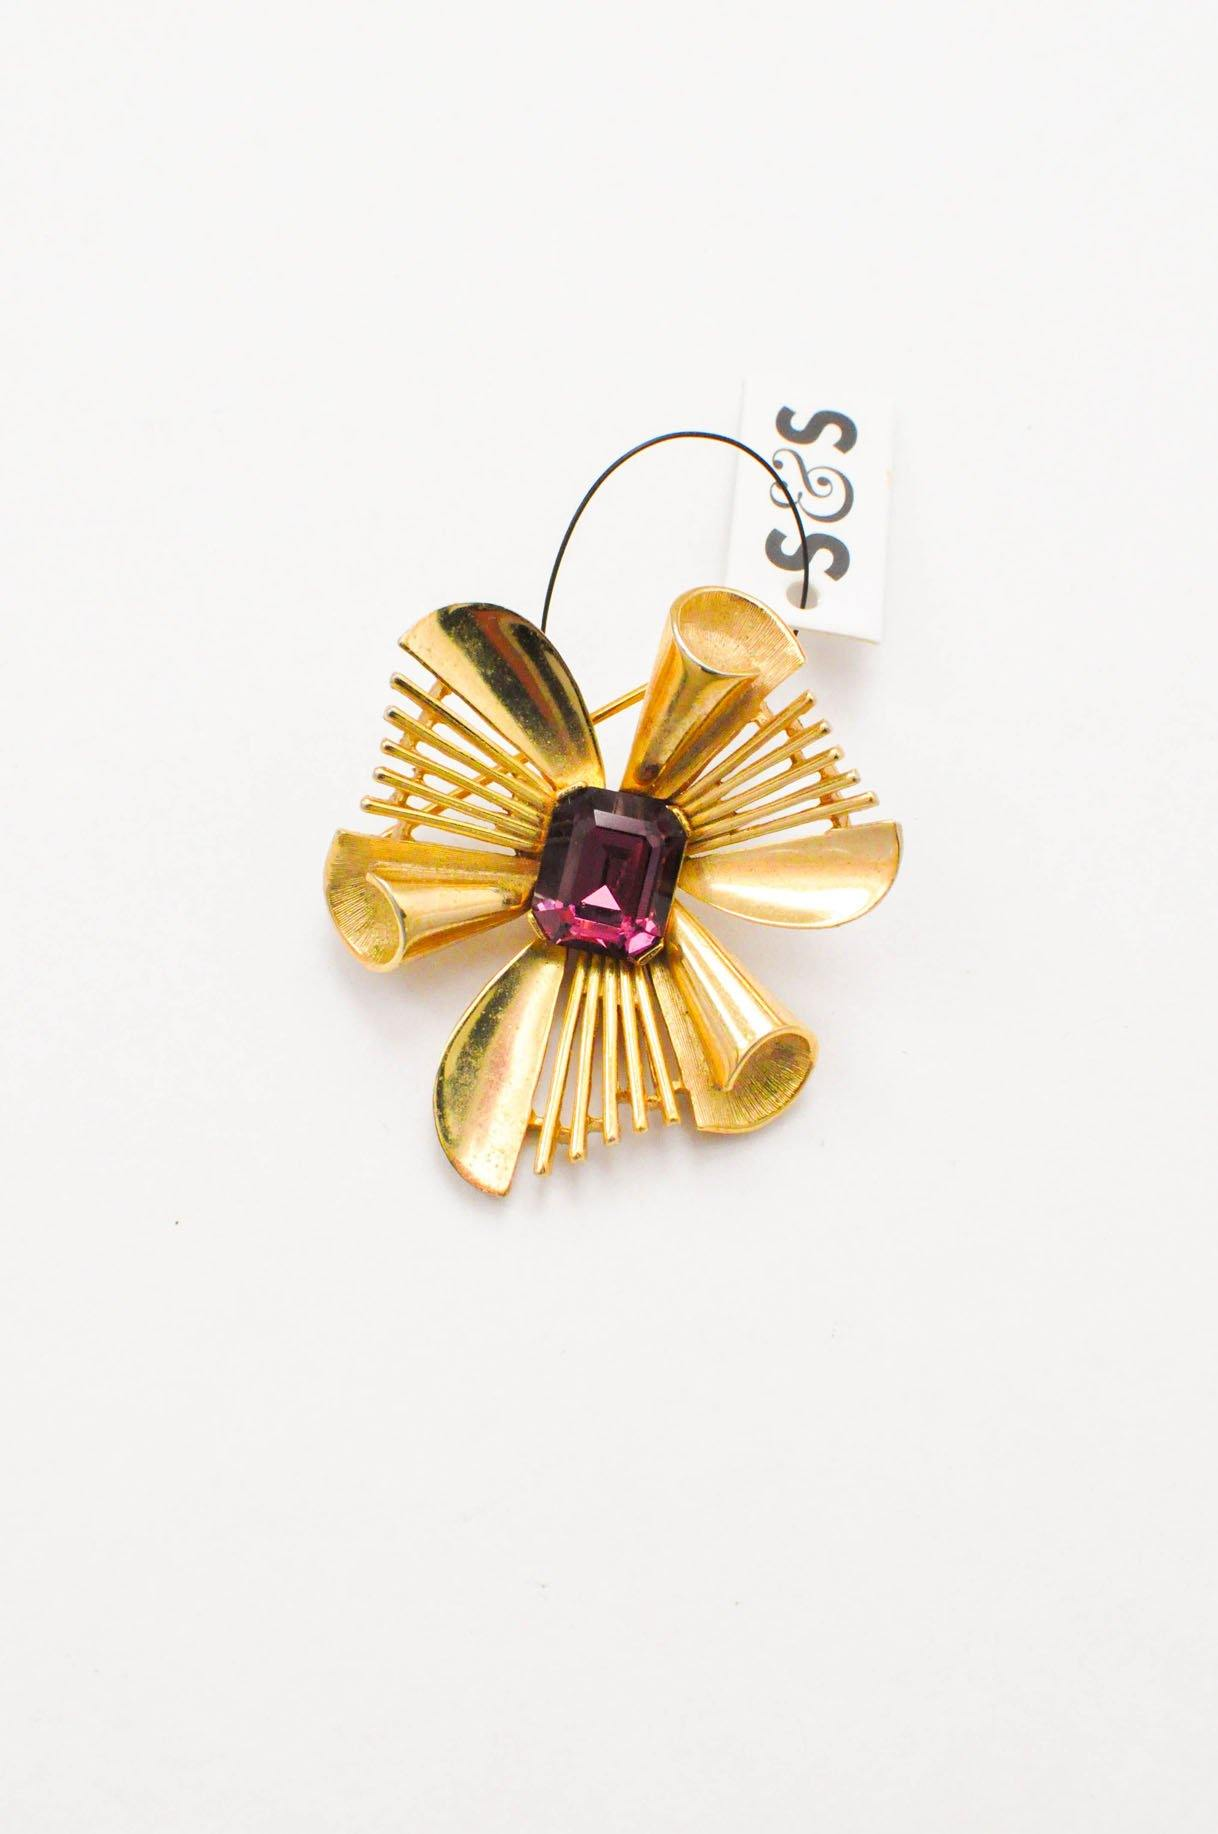 Vintage Trifari purple gem brooch from Sweet & Spark.